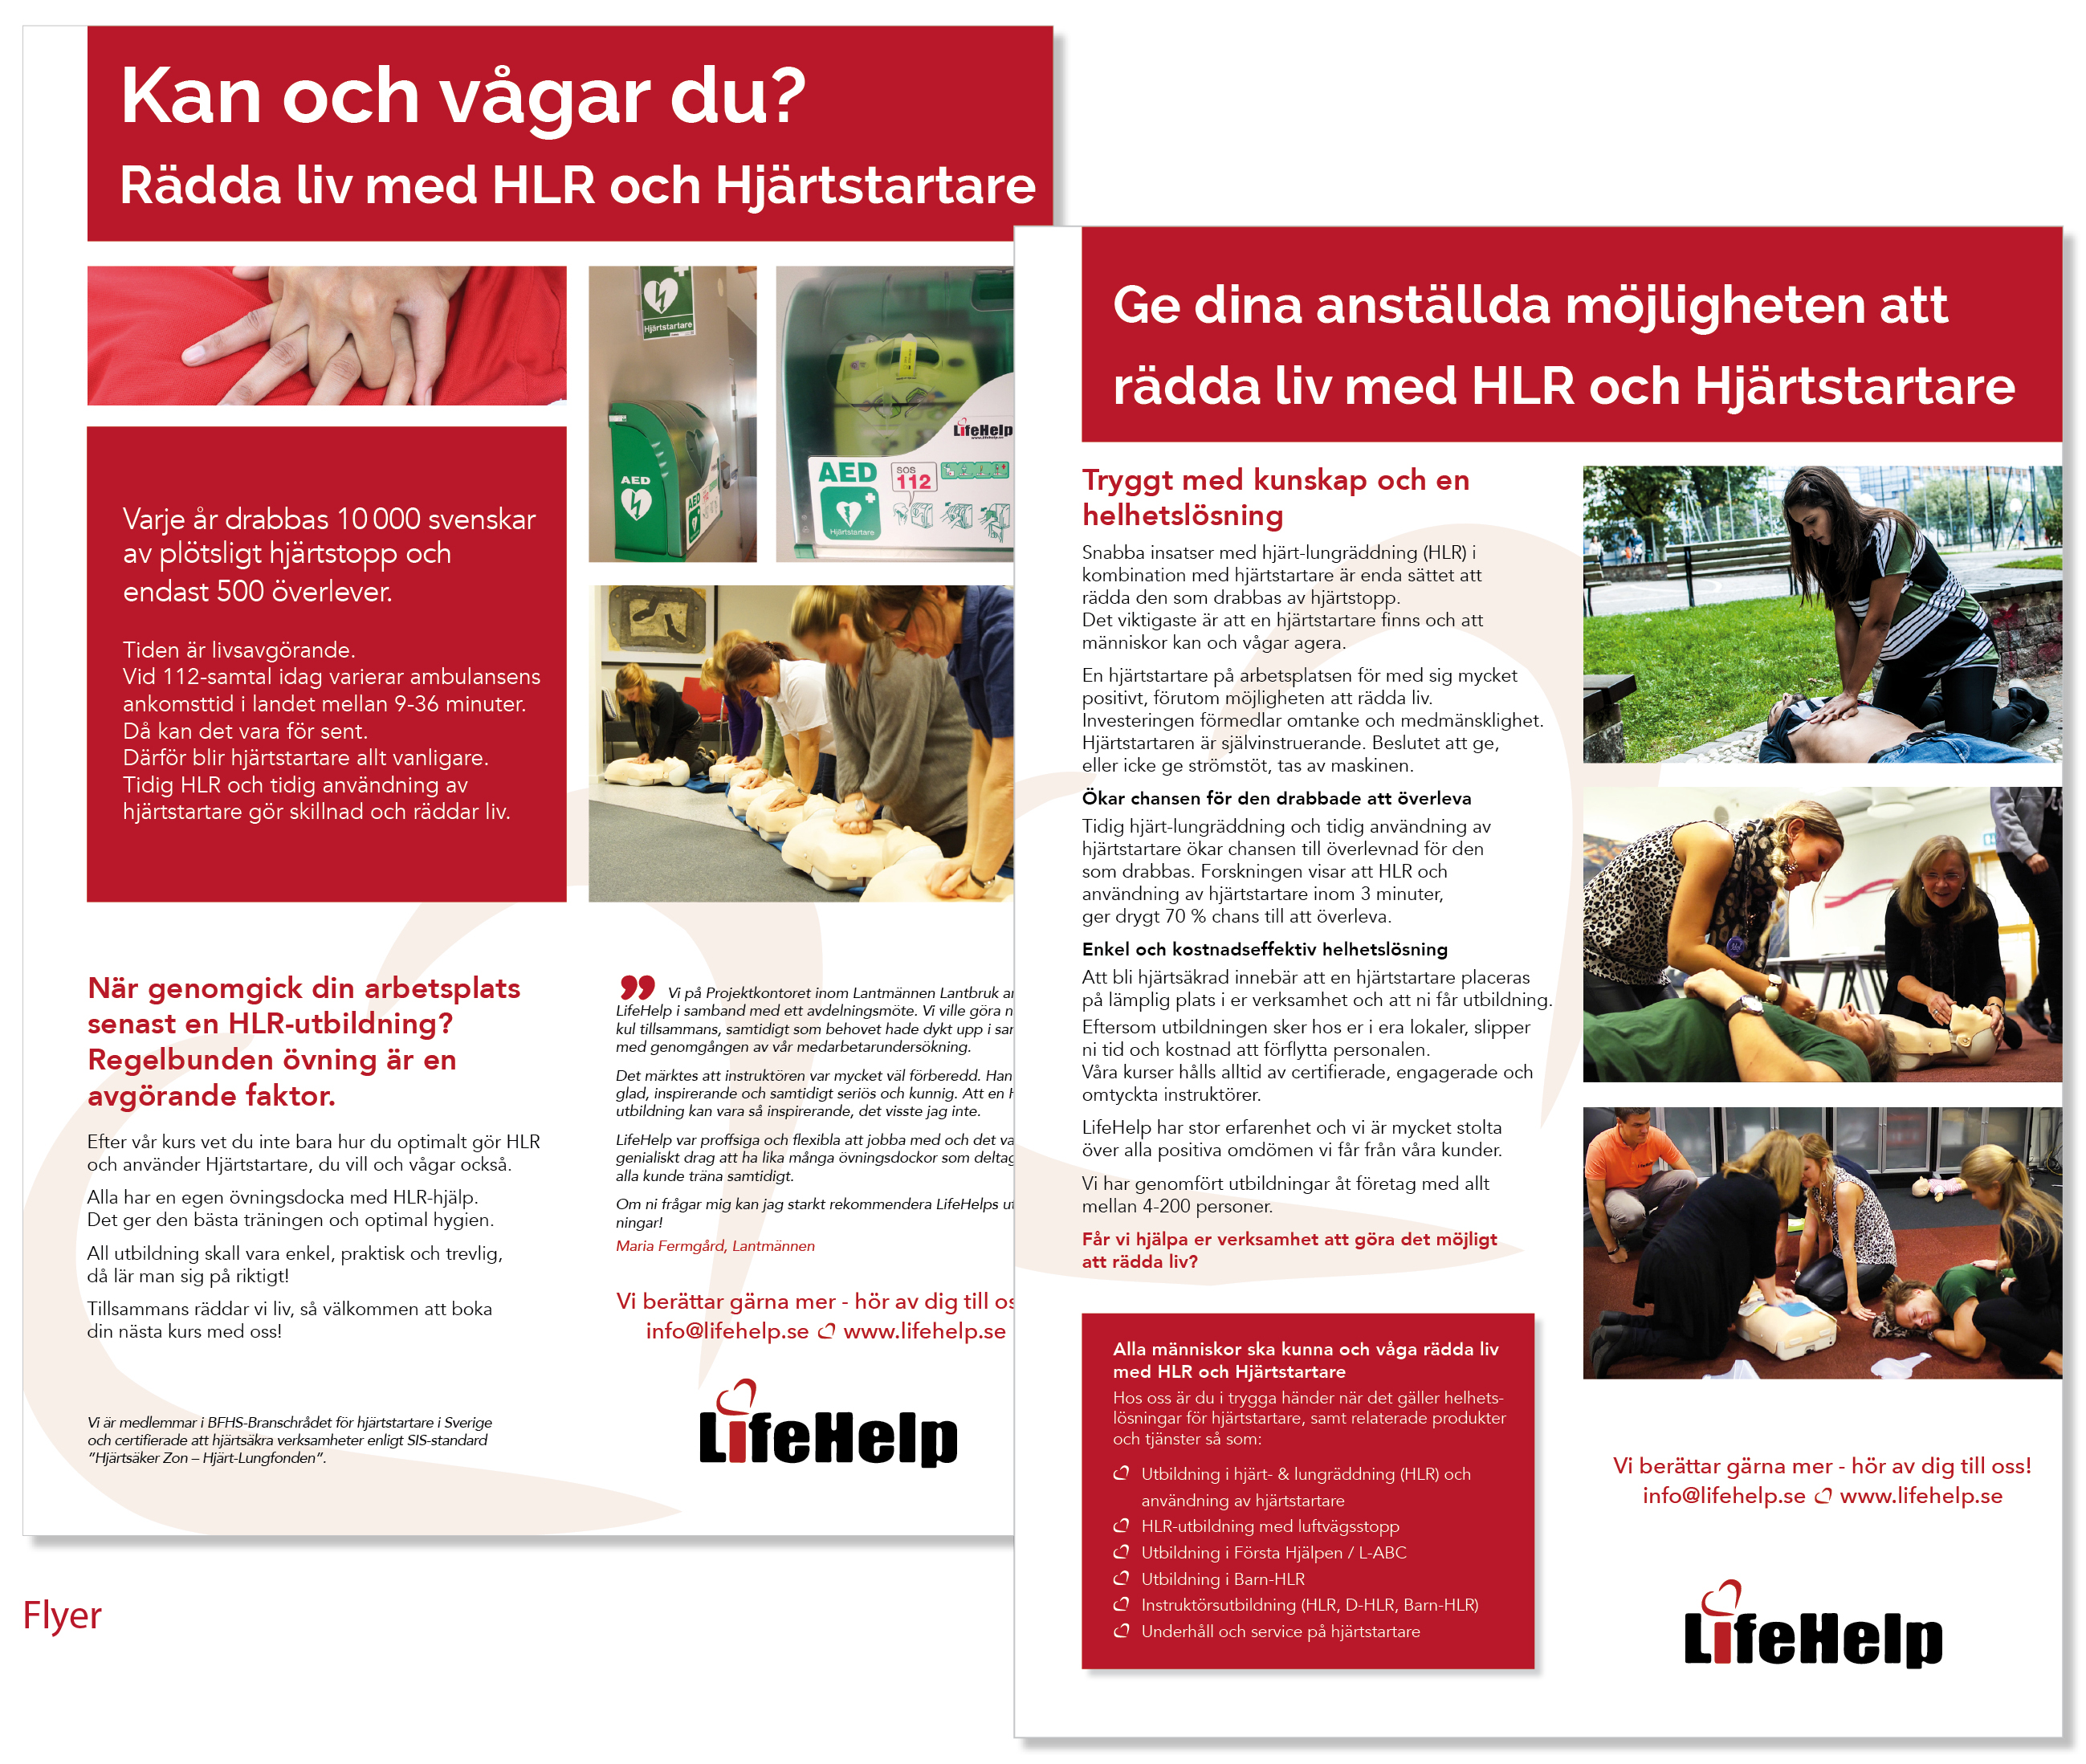 flyer_LifeHelp_företag_by epafi